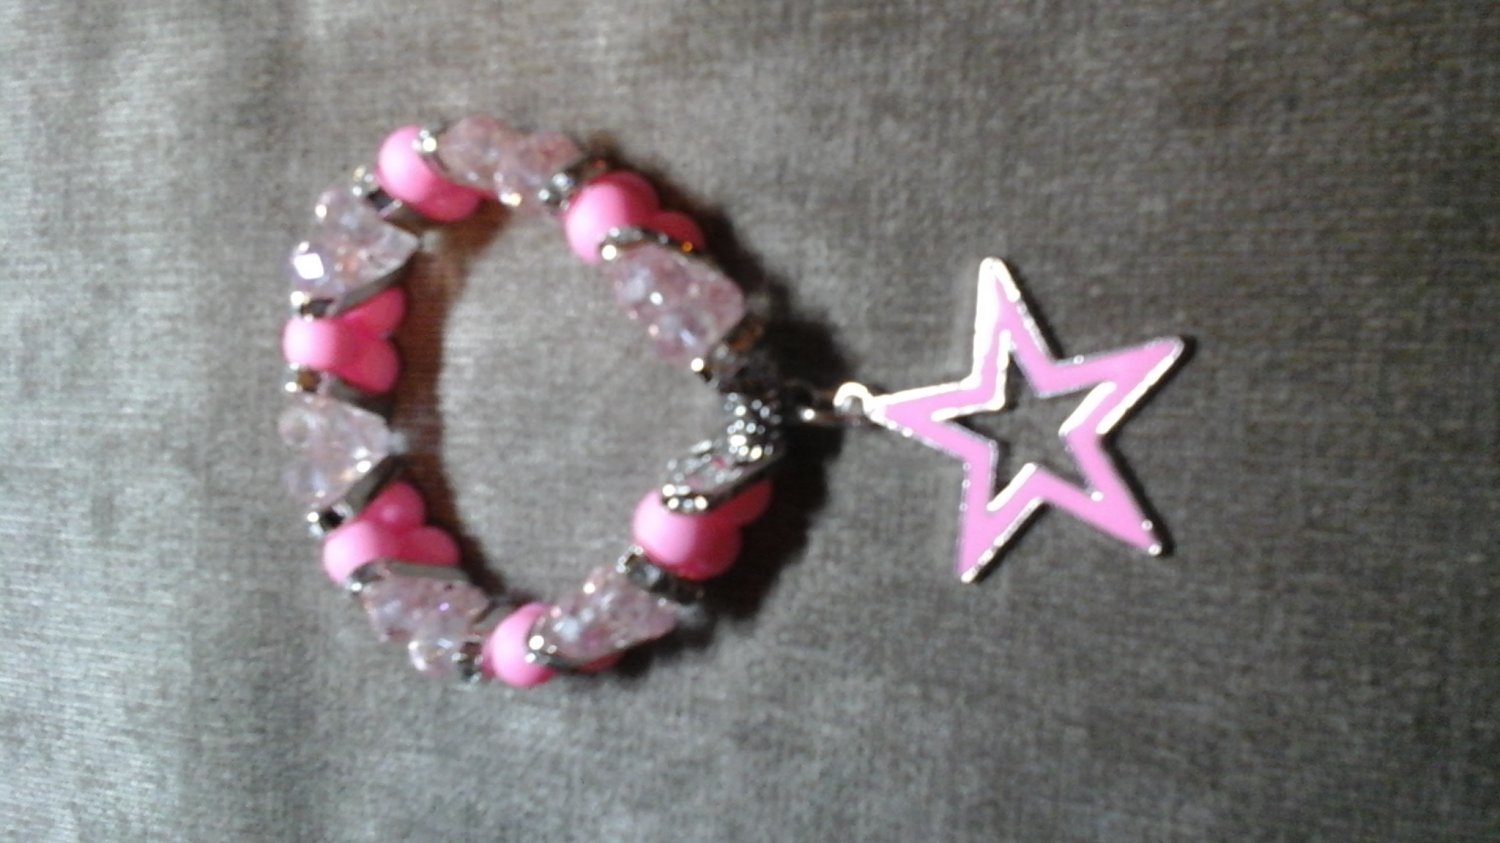 Serenity  Breast  Cancer  Awareness